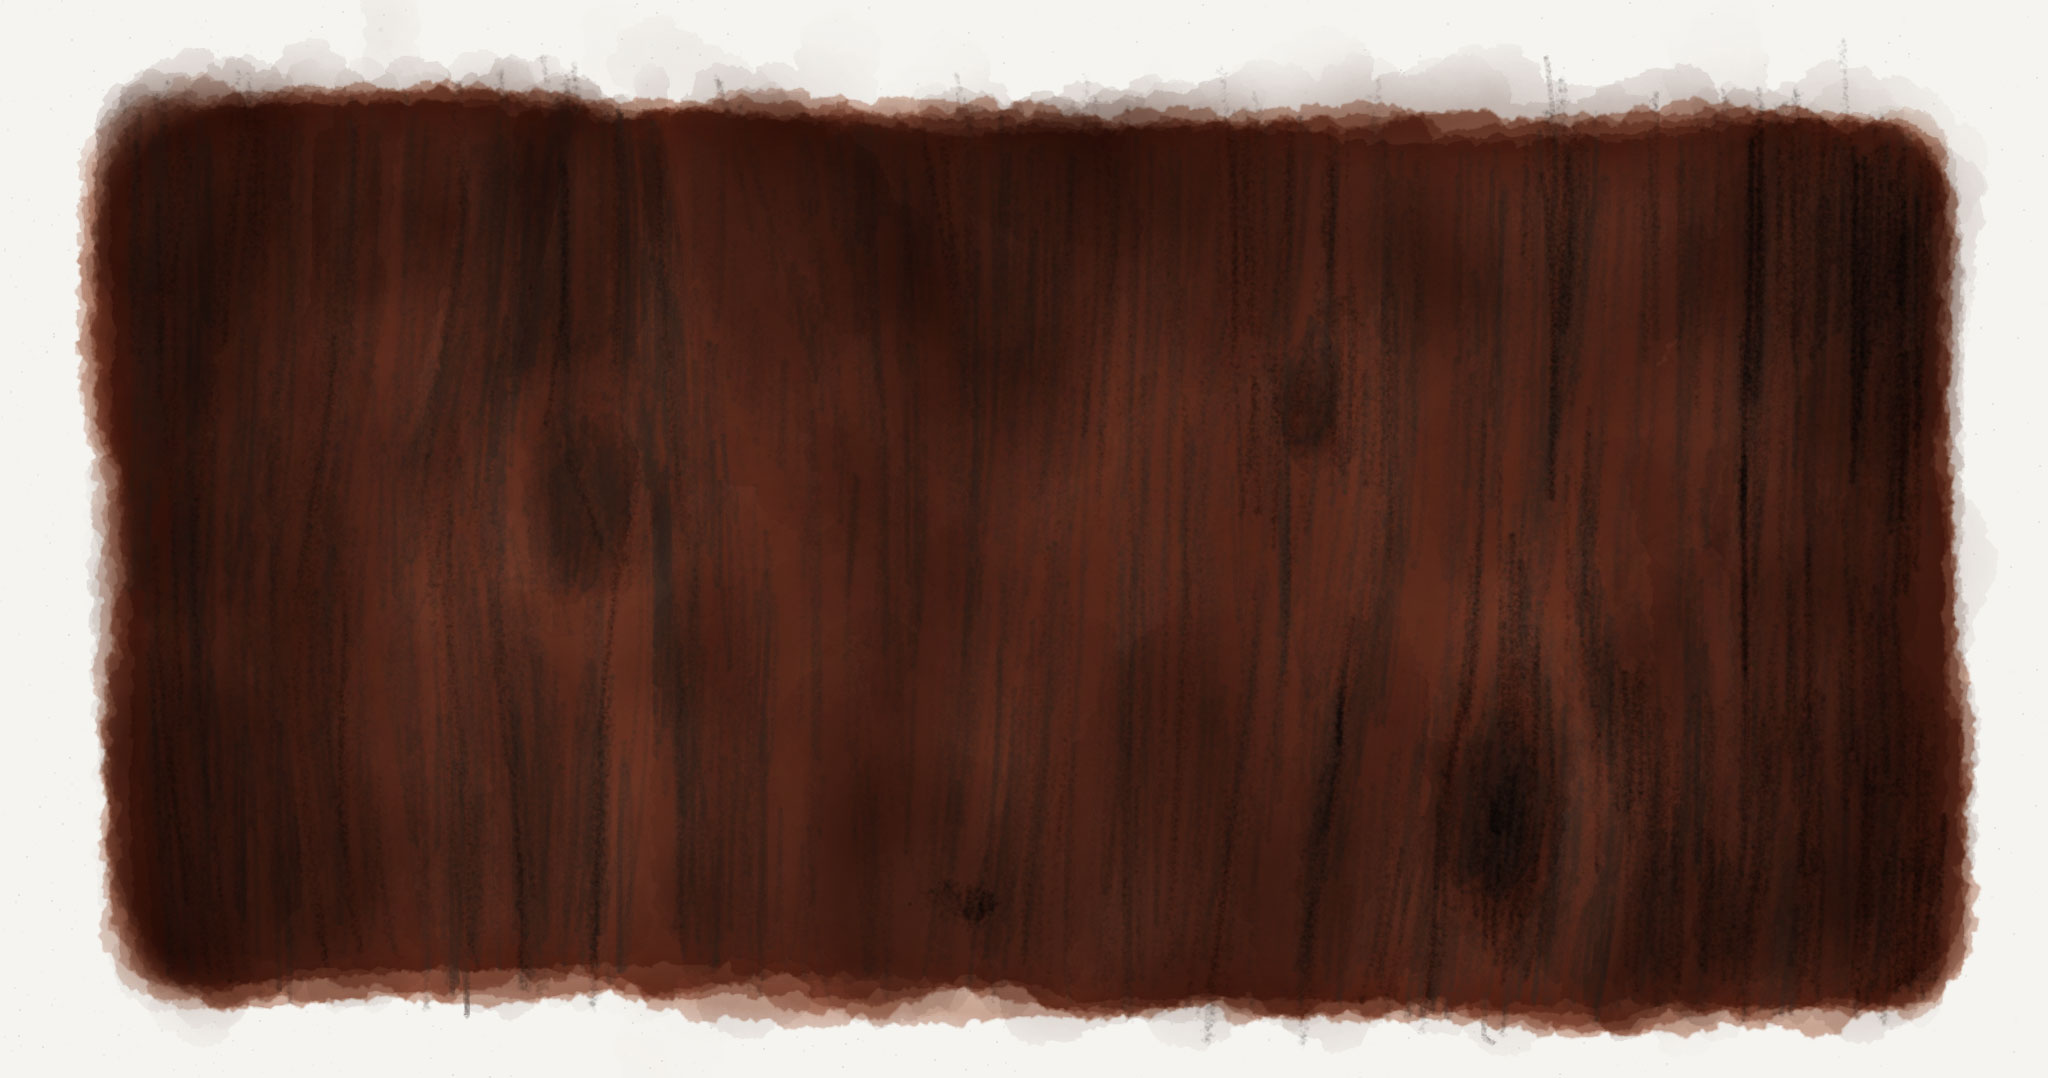 Drawn wood Screenshot Drawing Textures of FiftyThree: